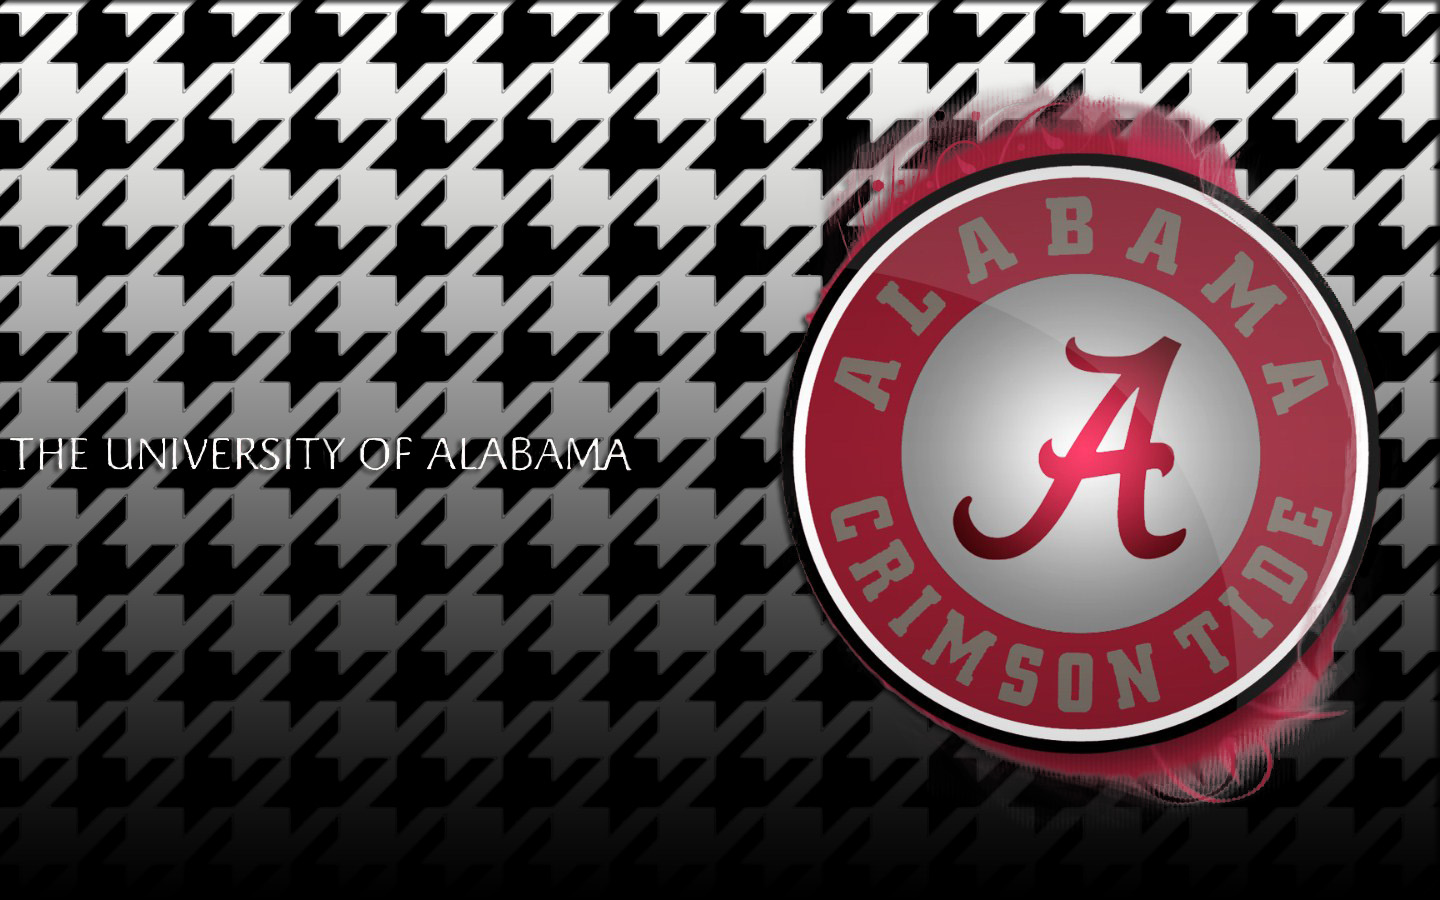 Alabama Crimson Tide Wallpaper 3 Alabama Crimson Tide Pinterest 1440x900